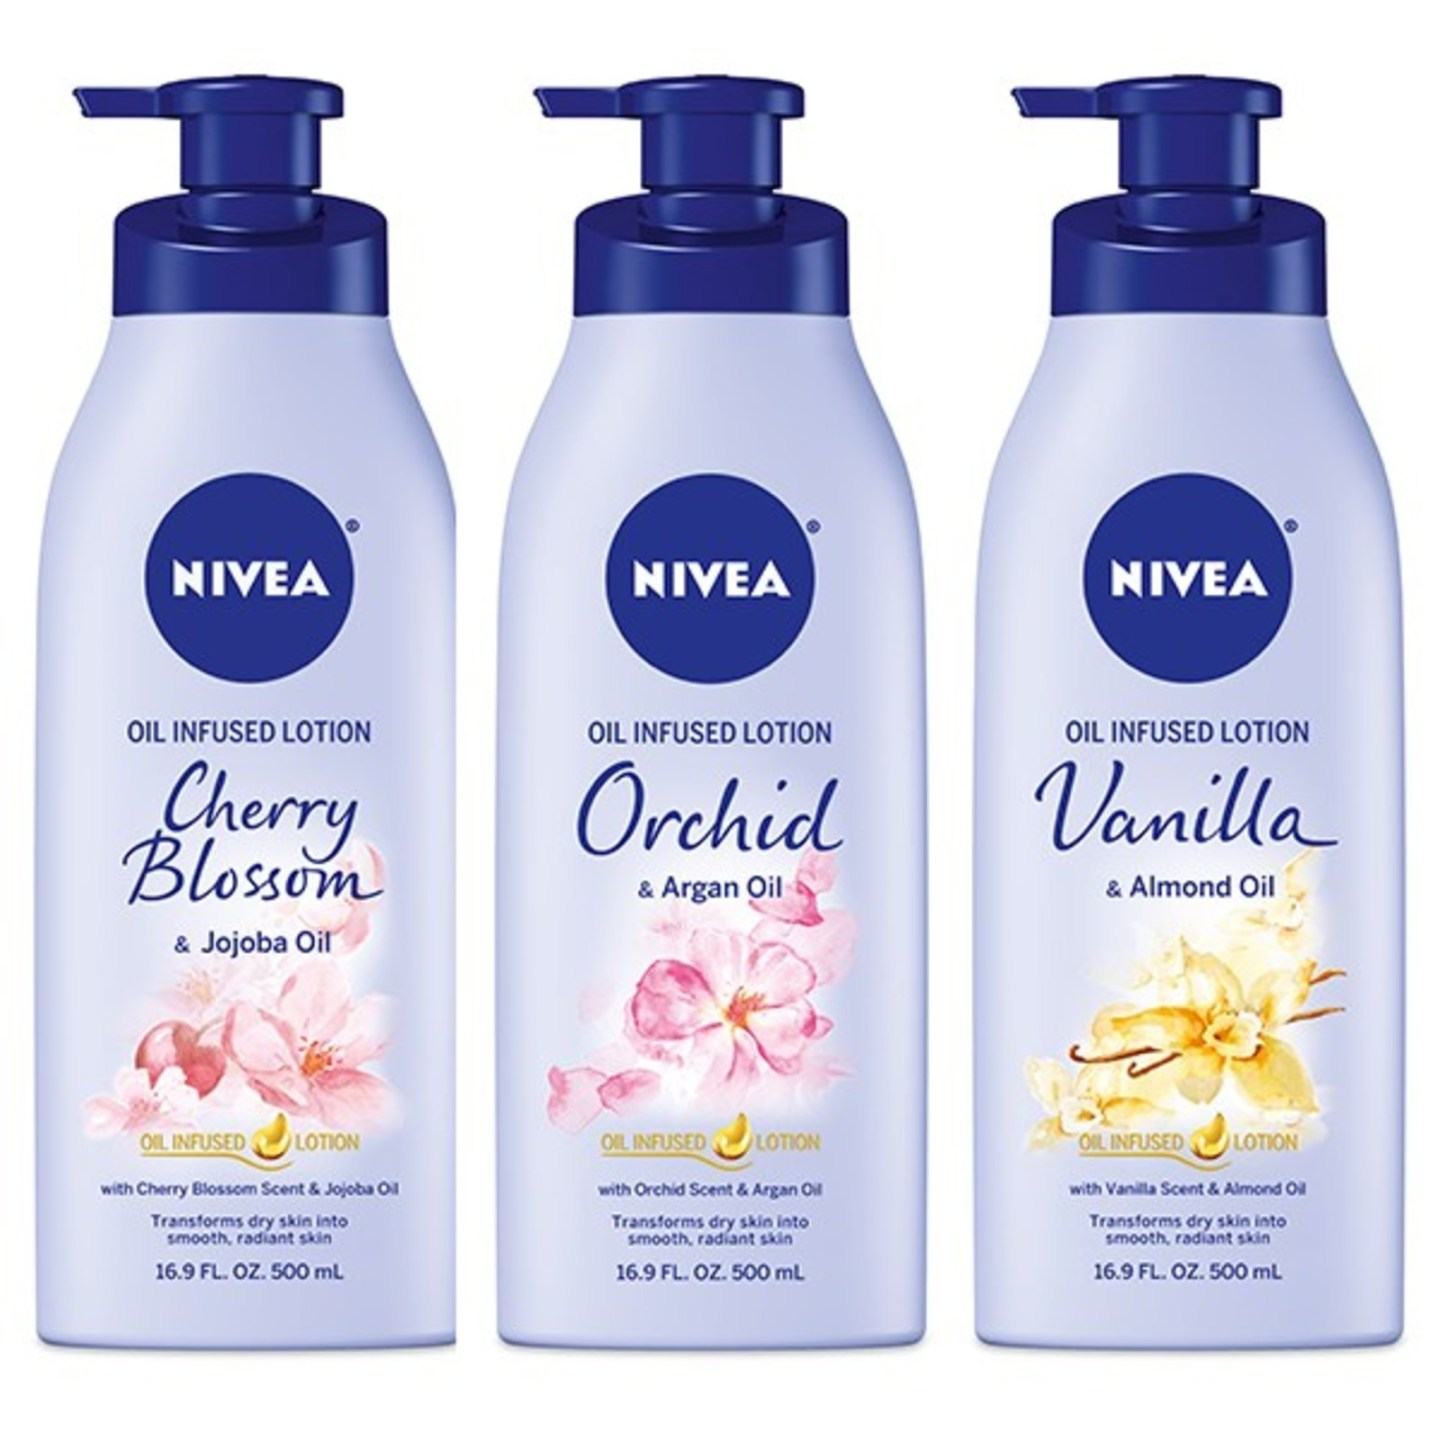 New NIVEA® Oil Infused Lotions!